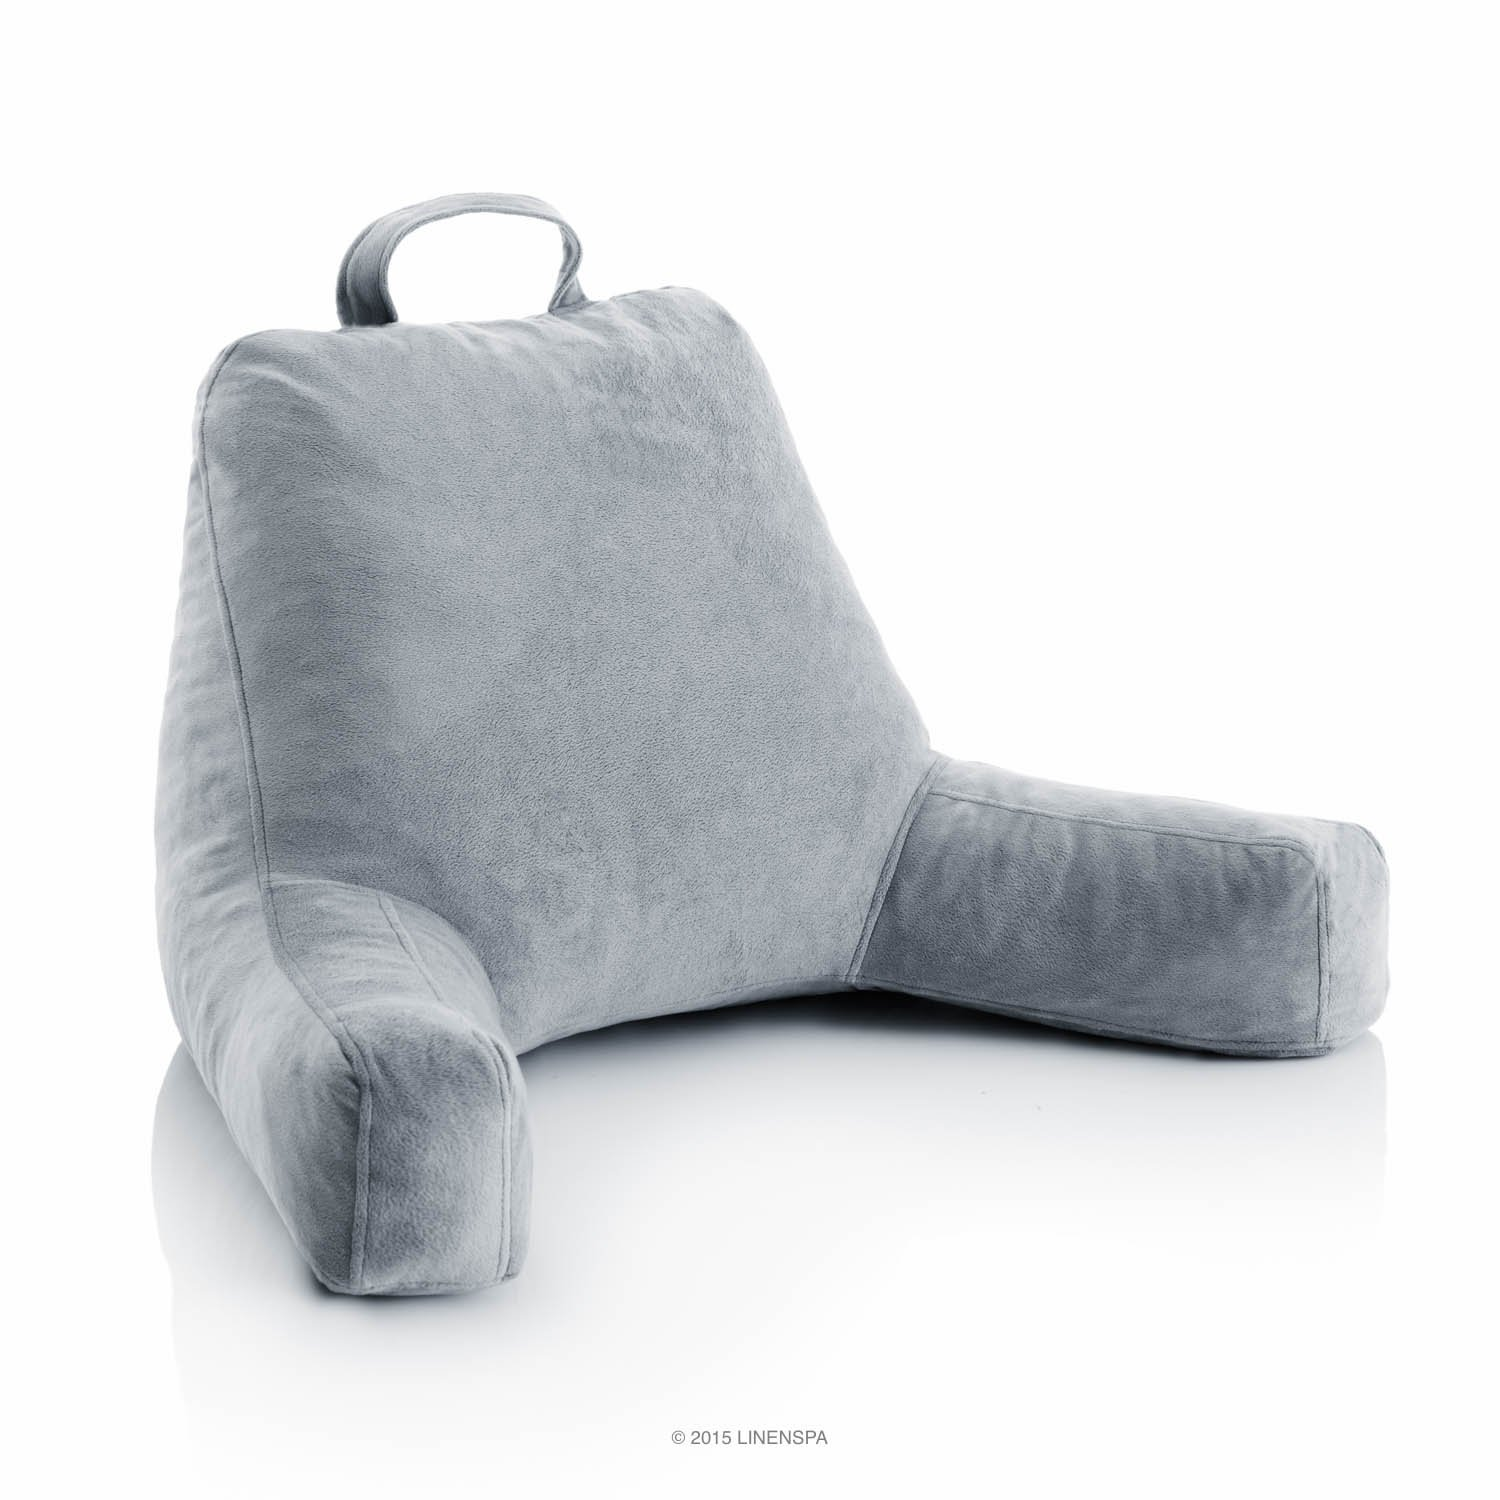 Linenspa Shredded Foam Reading Pillow - Perfect for Adults, Teens, and Kids - Velour Cover - 3 Year Warranty